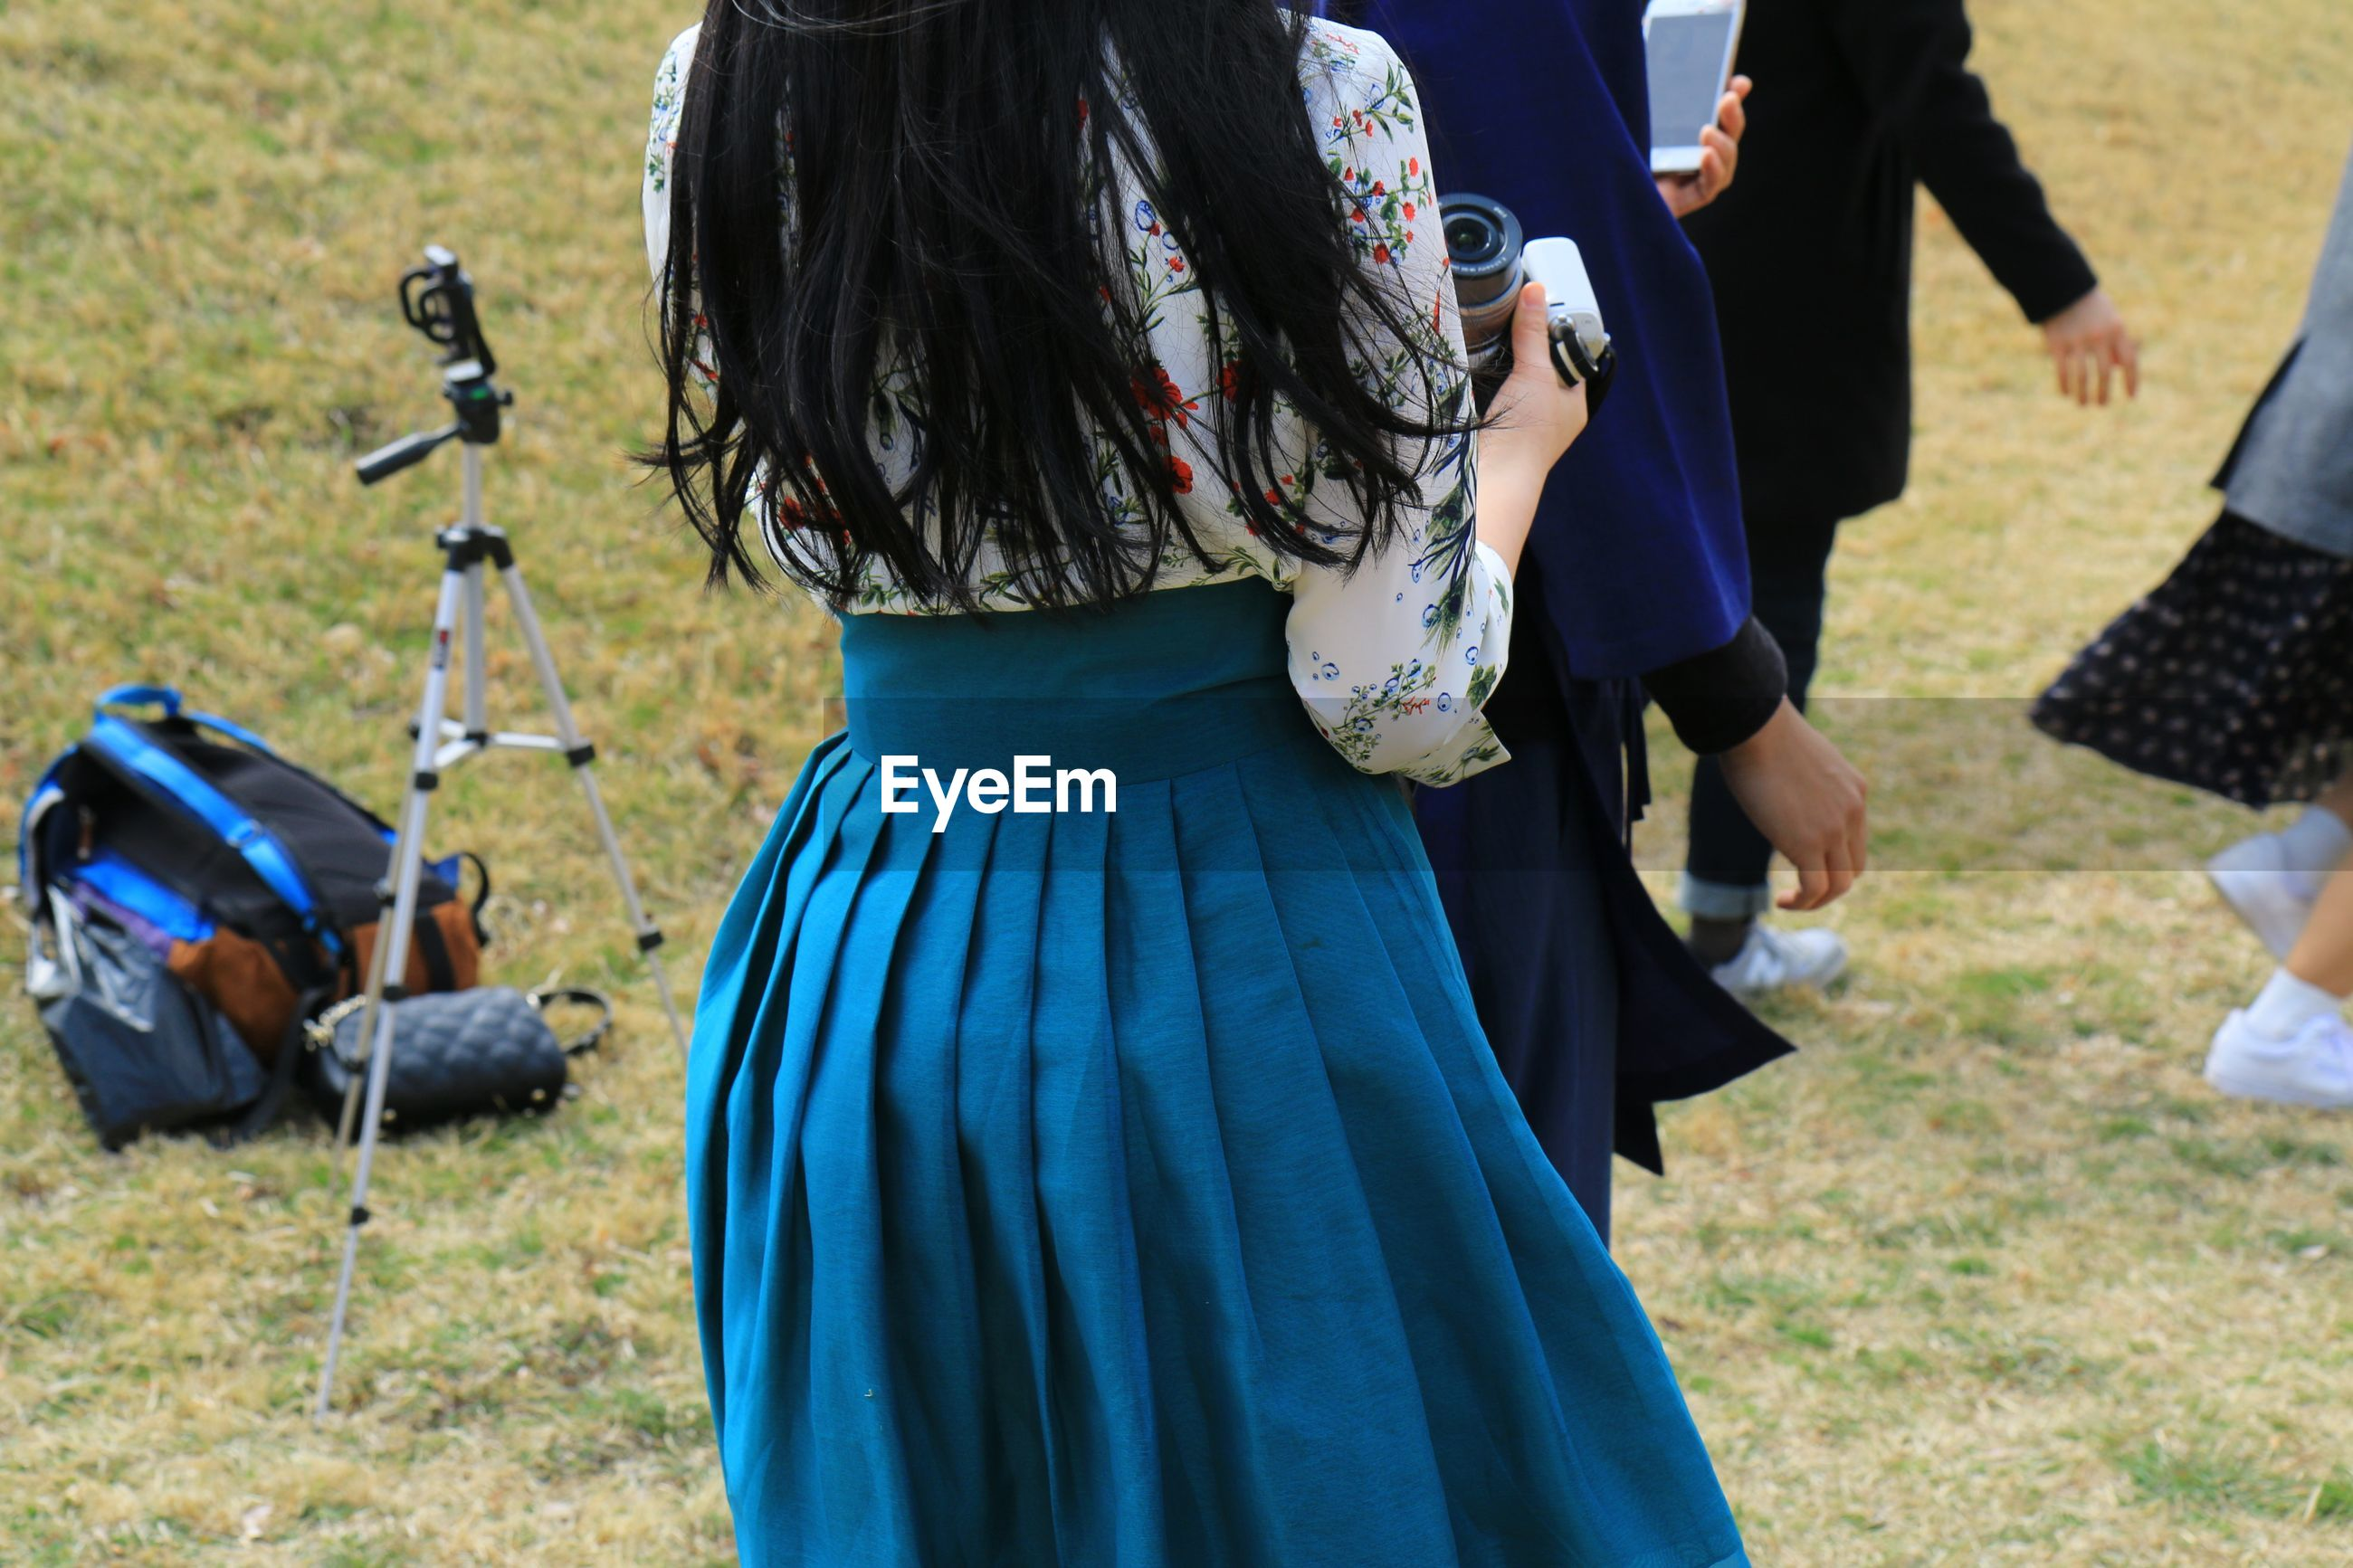 Midsection of woman holding camera while standing by people on field